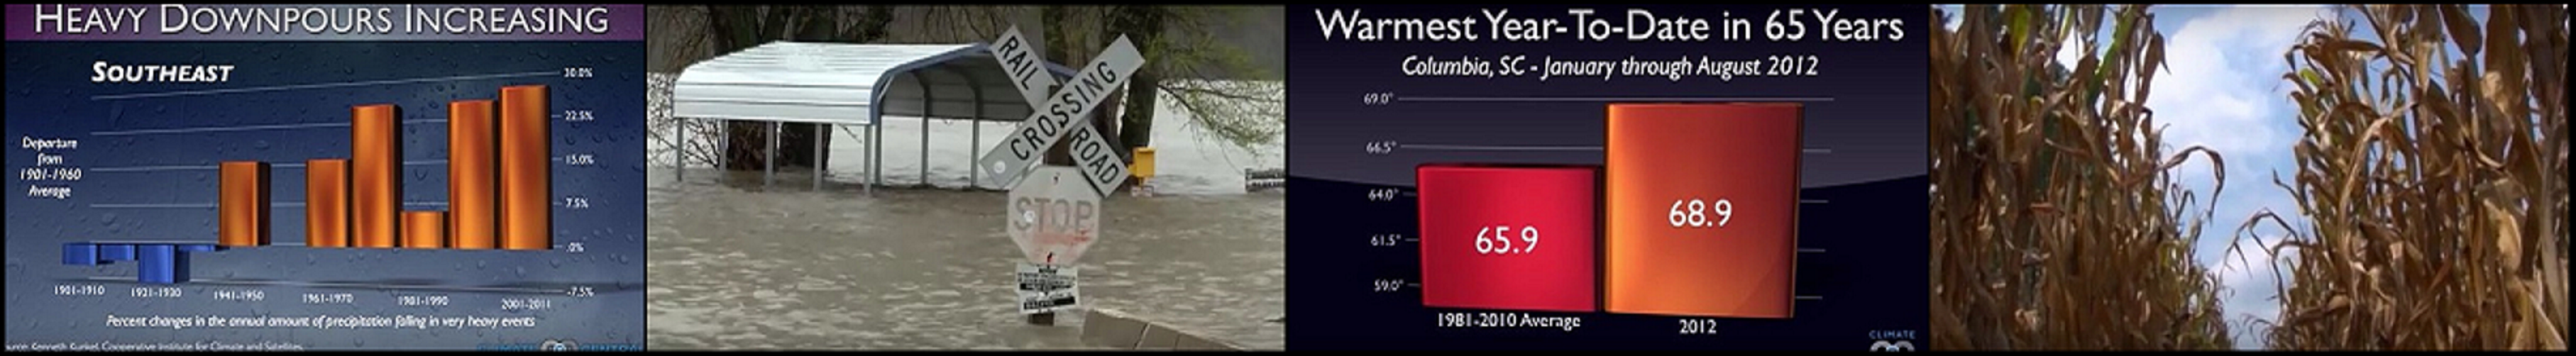 Images from NOAA video.